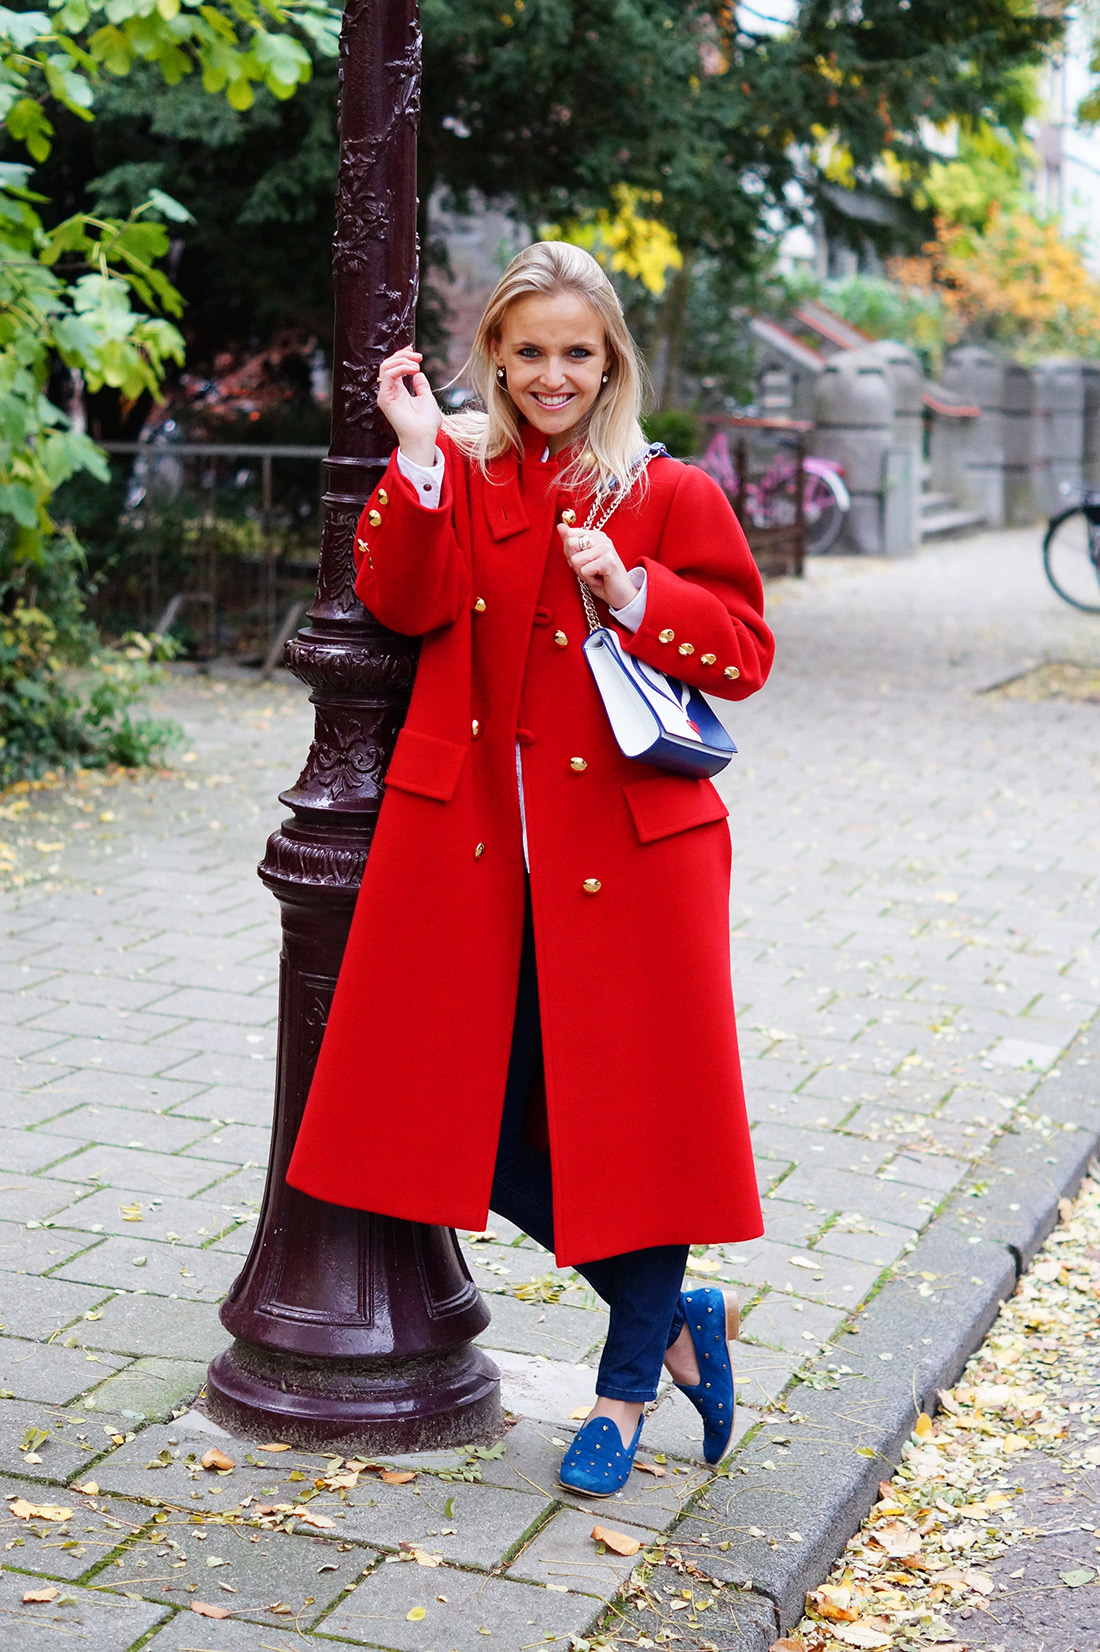 Bag-at-you---Fashion-blog---Love-Moschino-shoulderbag---Big-vintage-red-coat---Casual-outfit